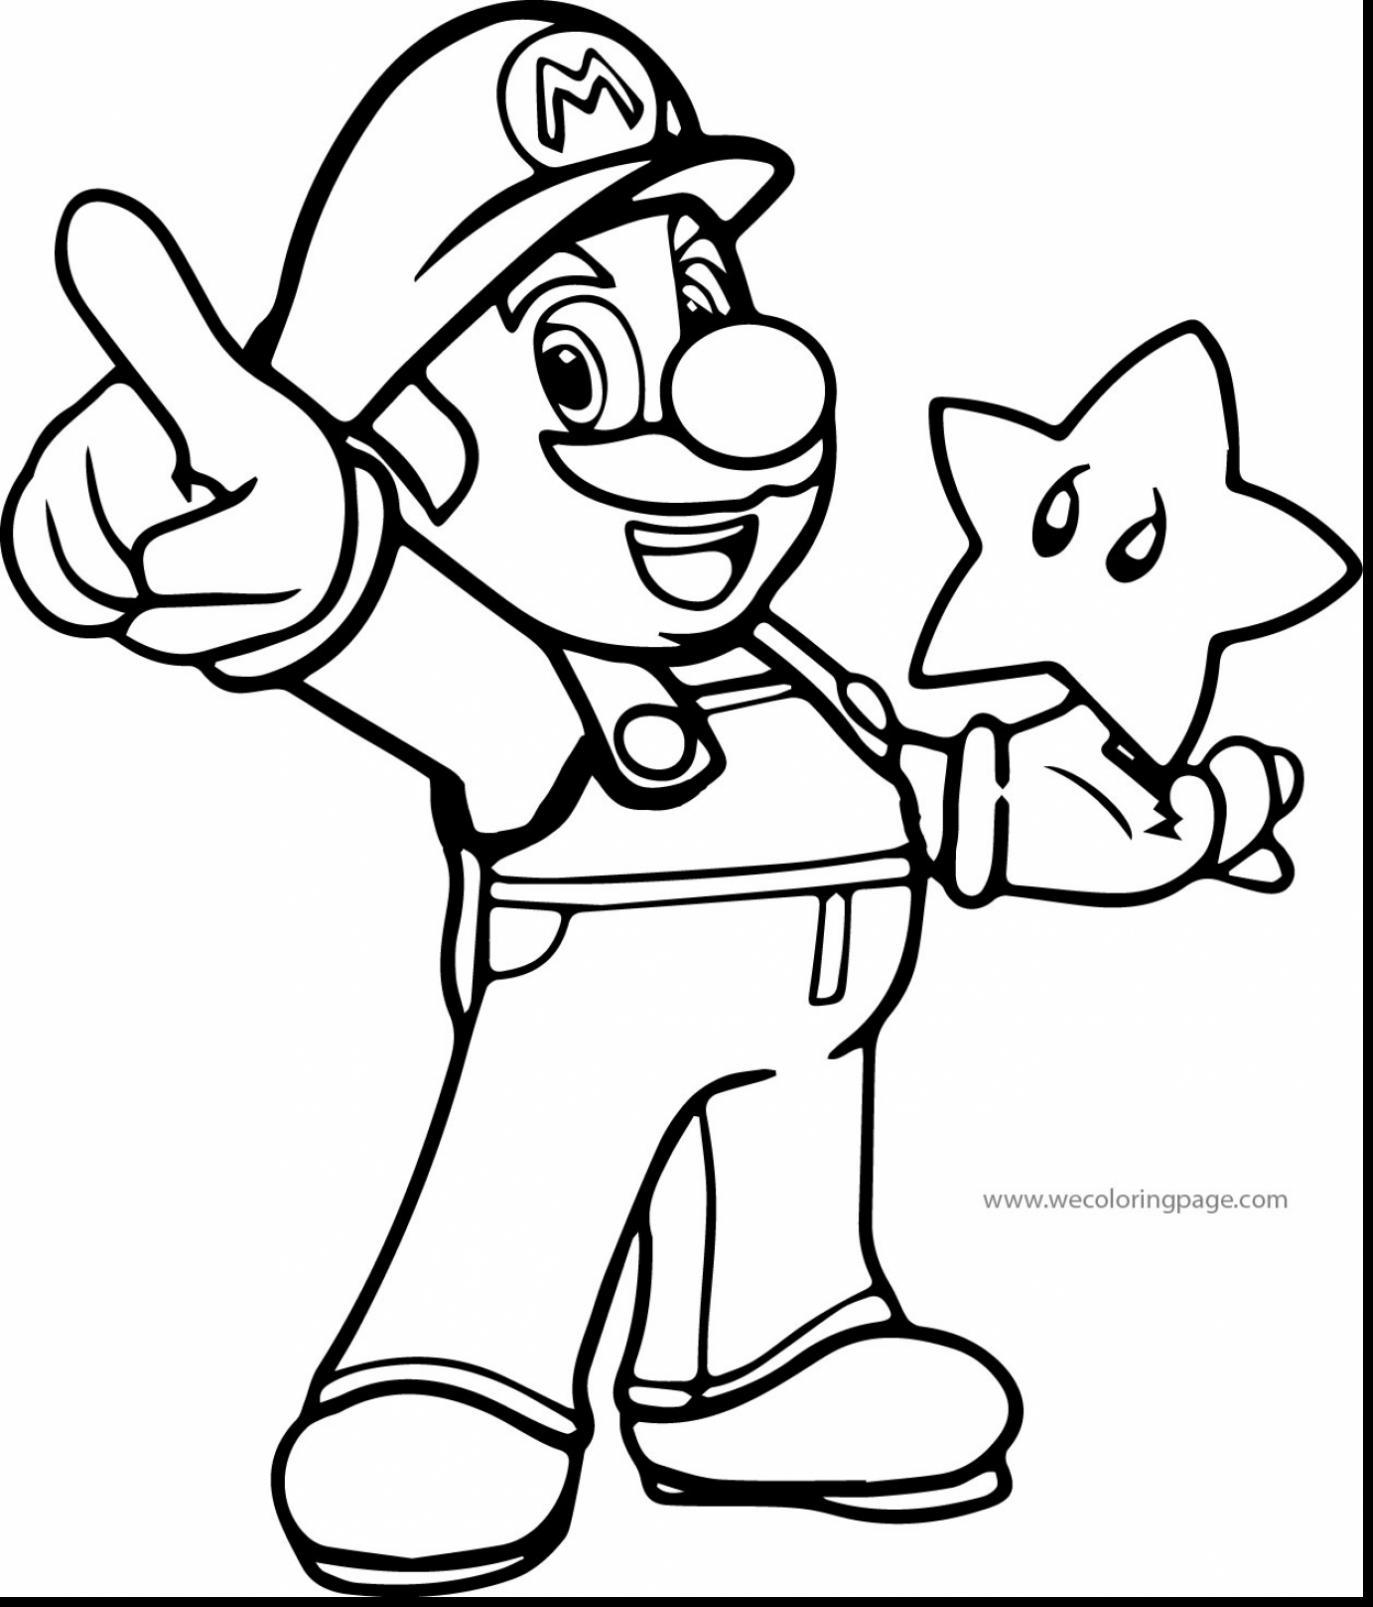 1373x1607 Marvelous Super Coloring Pages Printable Image Picture Of Popular